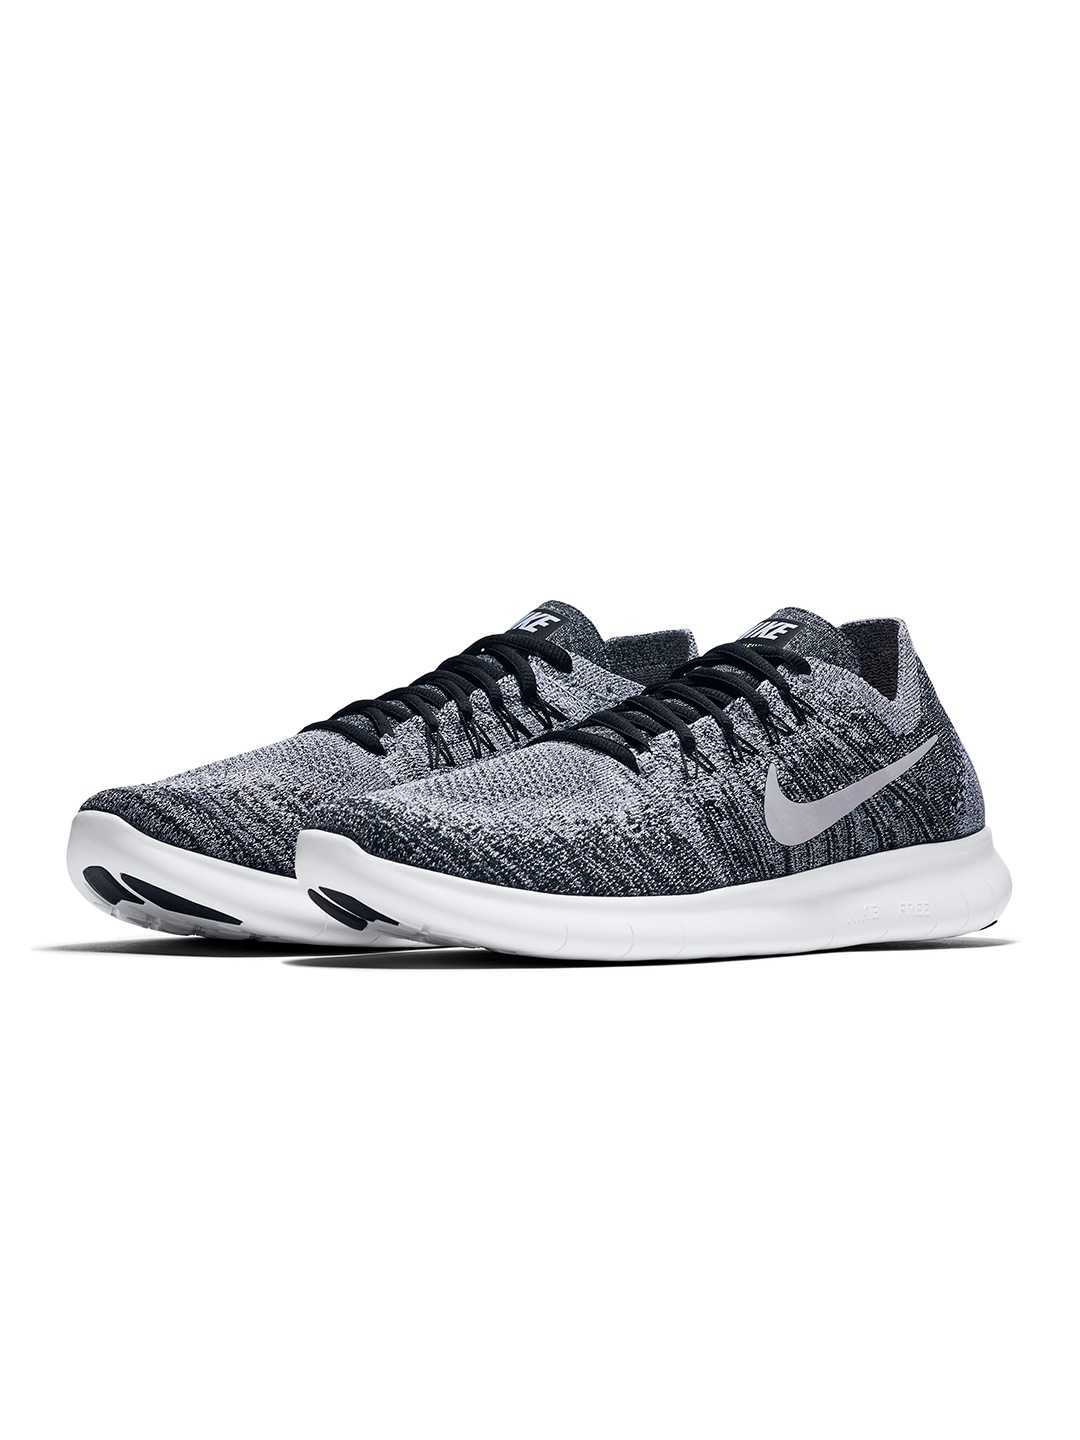 2b5b5776ea96d ... shoe 0f117 46756  netherlands nike men charcoal grey free rn flyknit 2017  running shoes price in india 398b9 1ad71